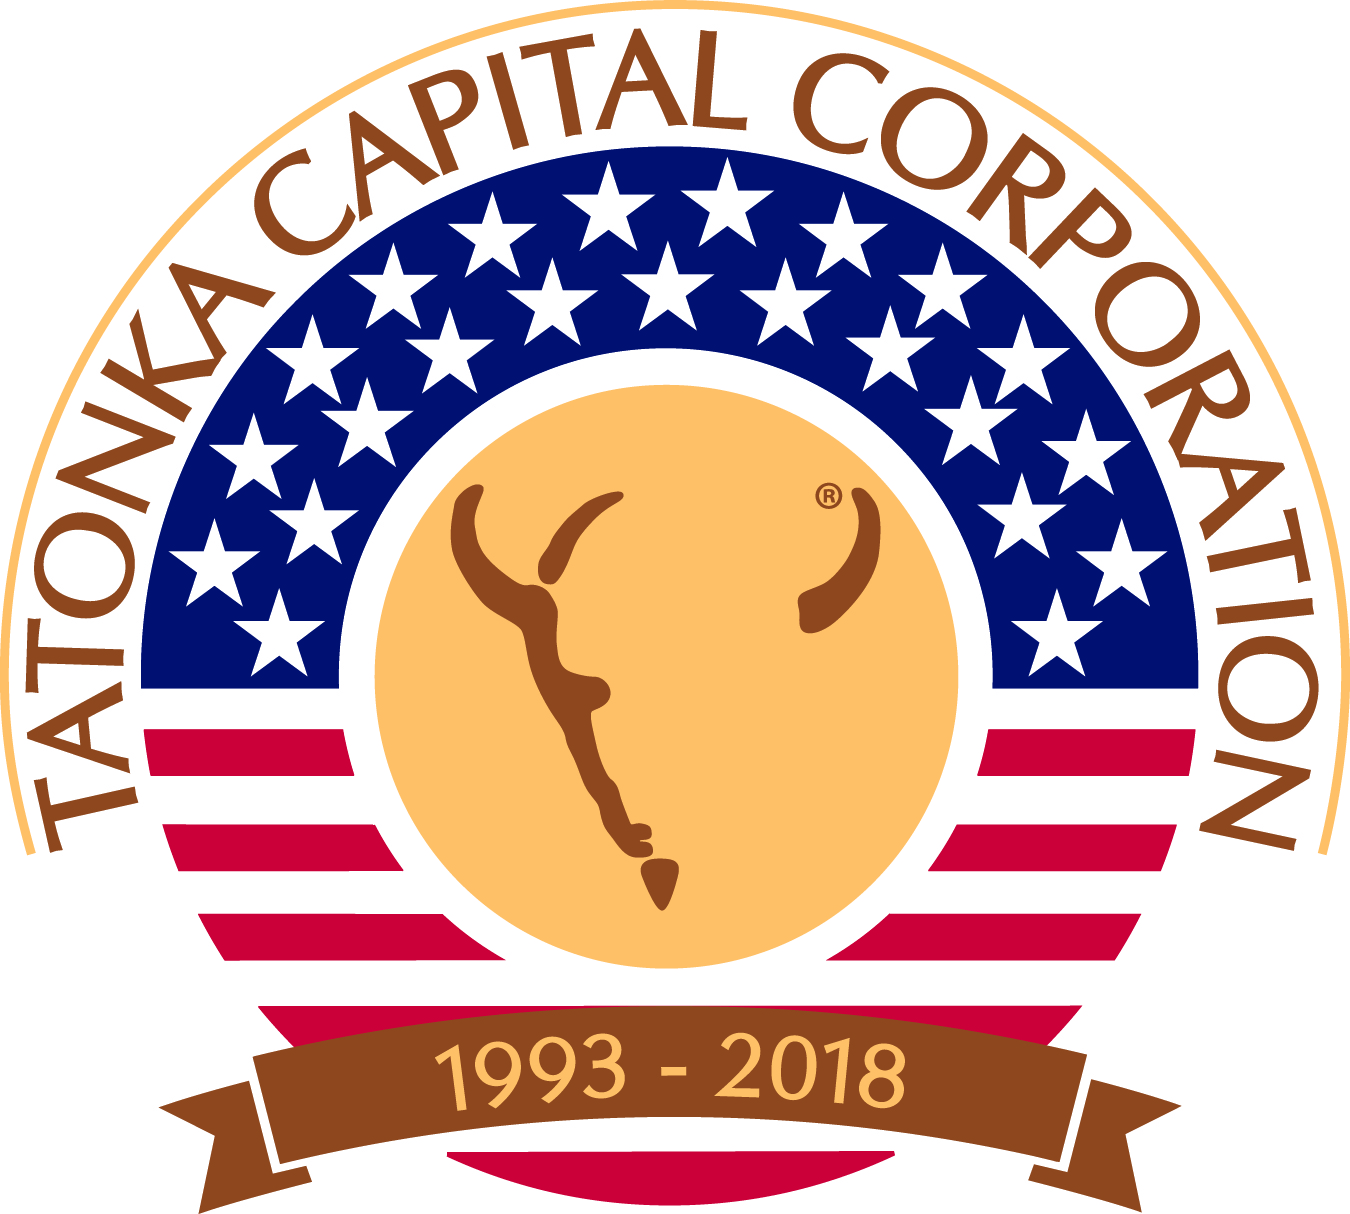 Tatonka Capital Corporation